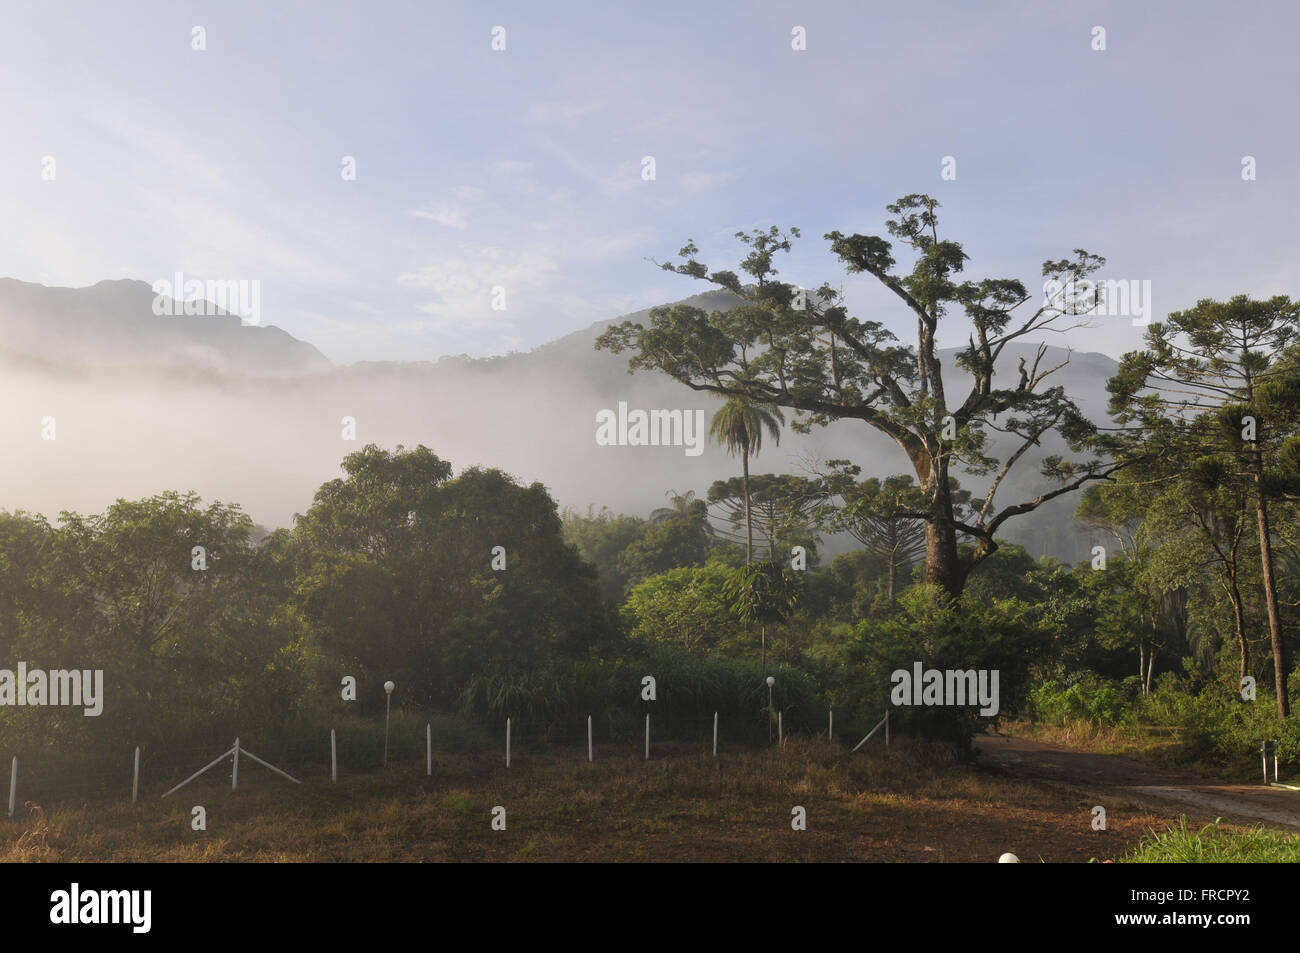 PRNP the Santuario Blimey - area of transition between rain forest and savanna - Stock Image